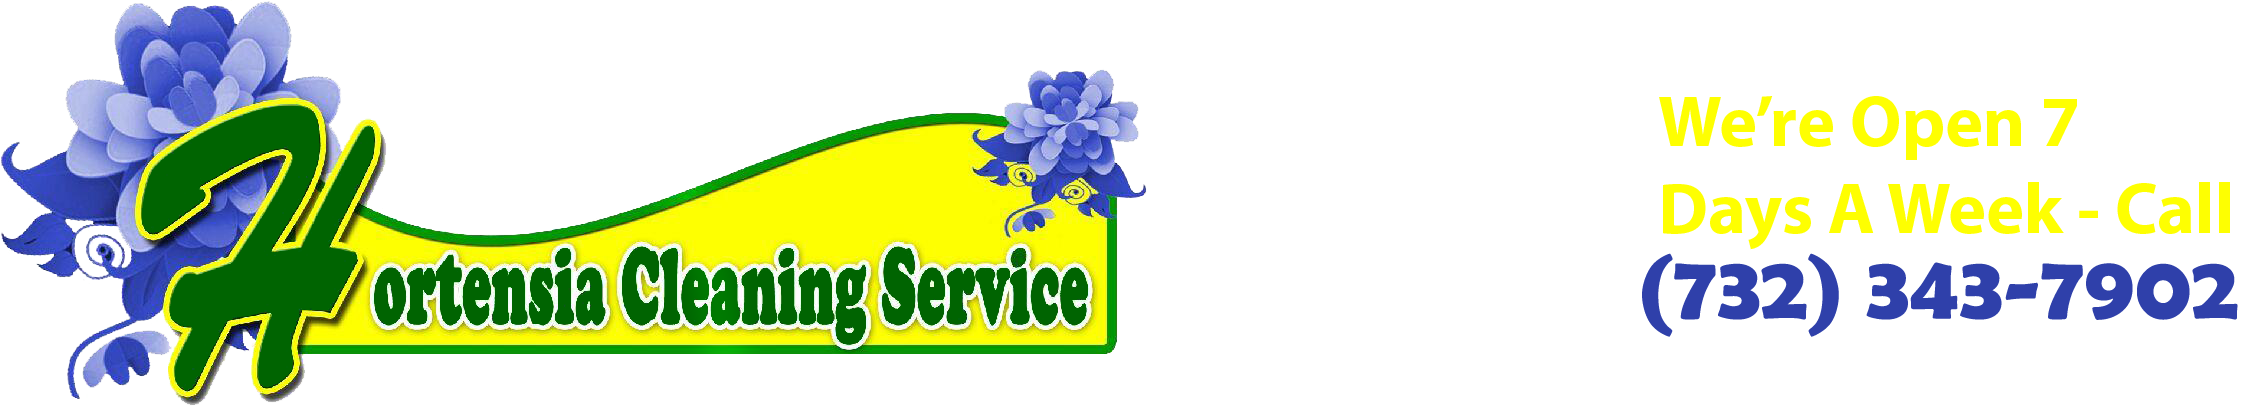 Maid clipart dusting brush. Nj restaurant cleaning service